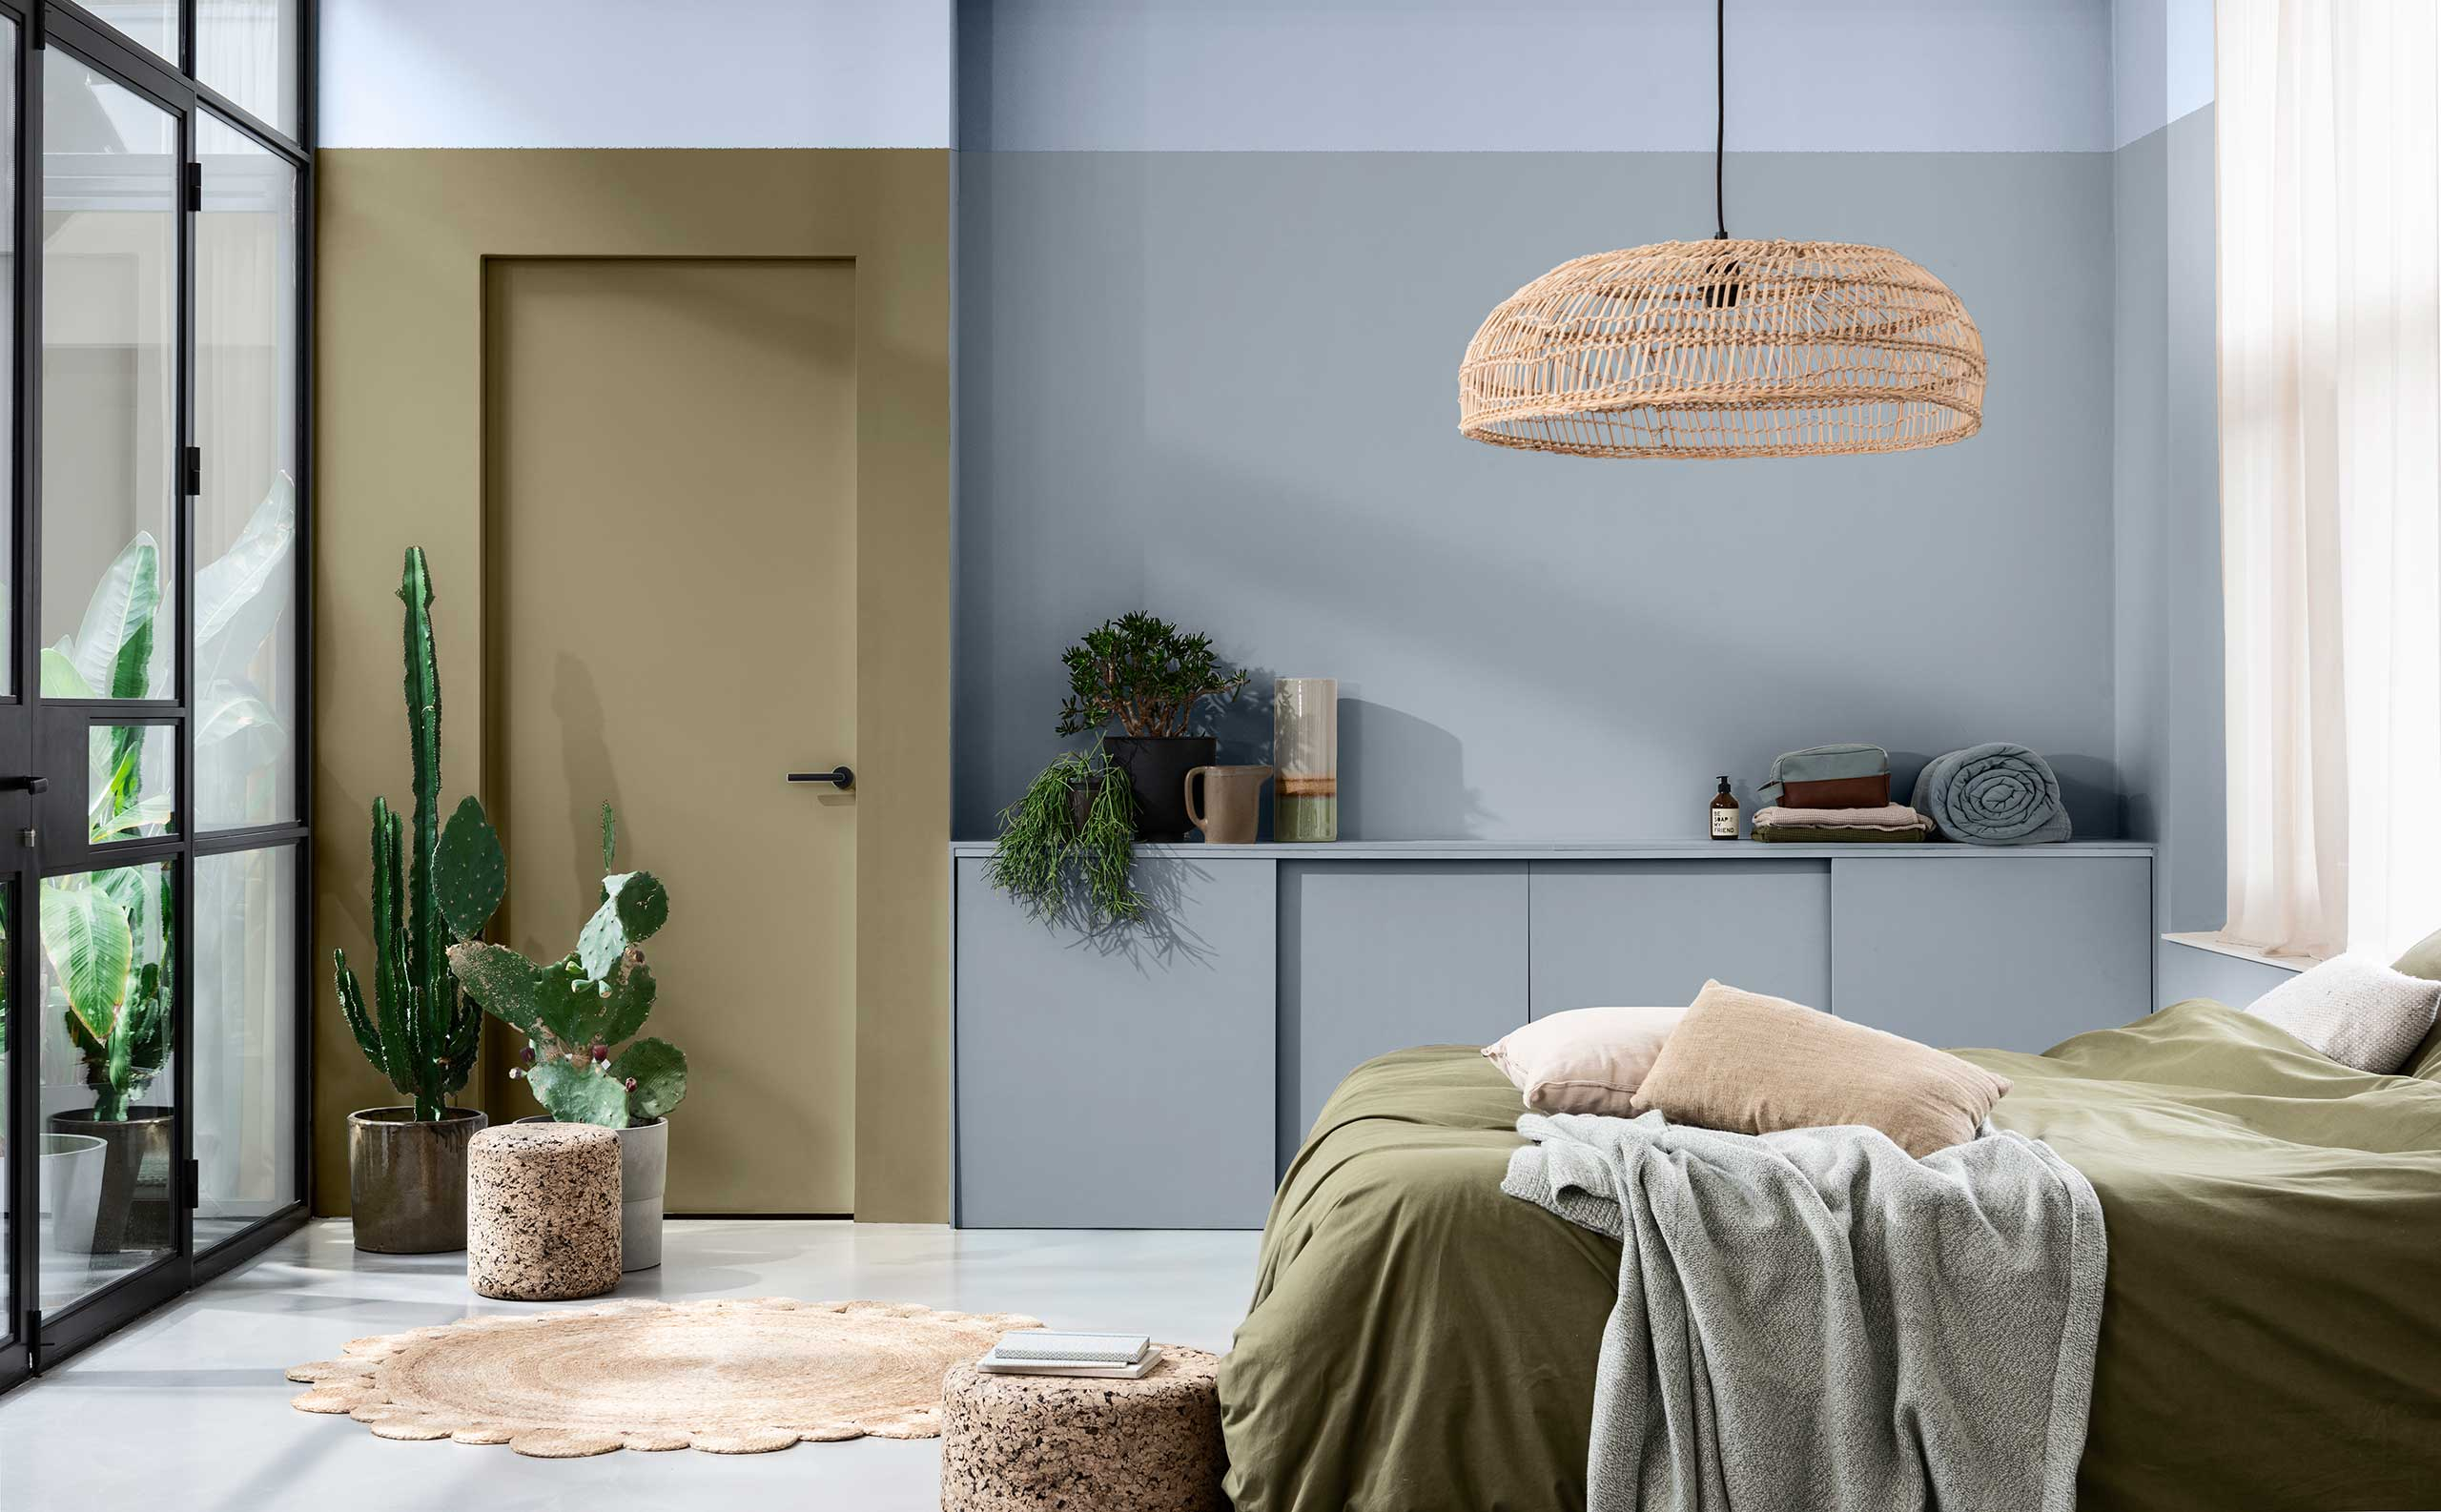 Dulux-Colour-Futures-Colour-of-the-Year-2022-The-Greenhouse-Colours-BedRoom-Inspiration-Global-12